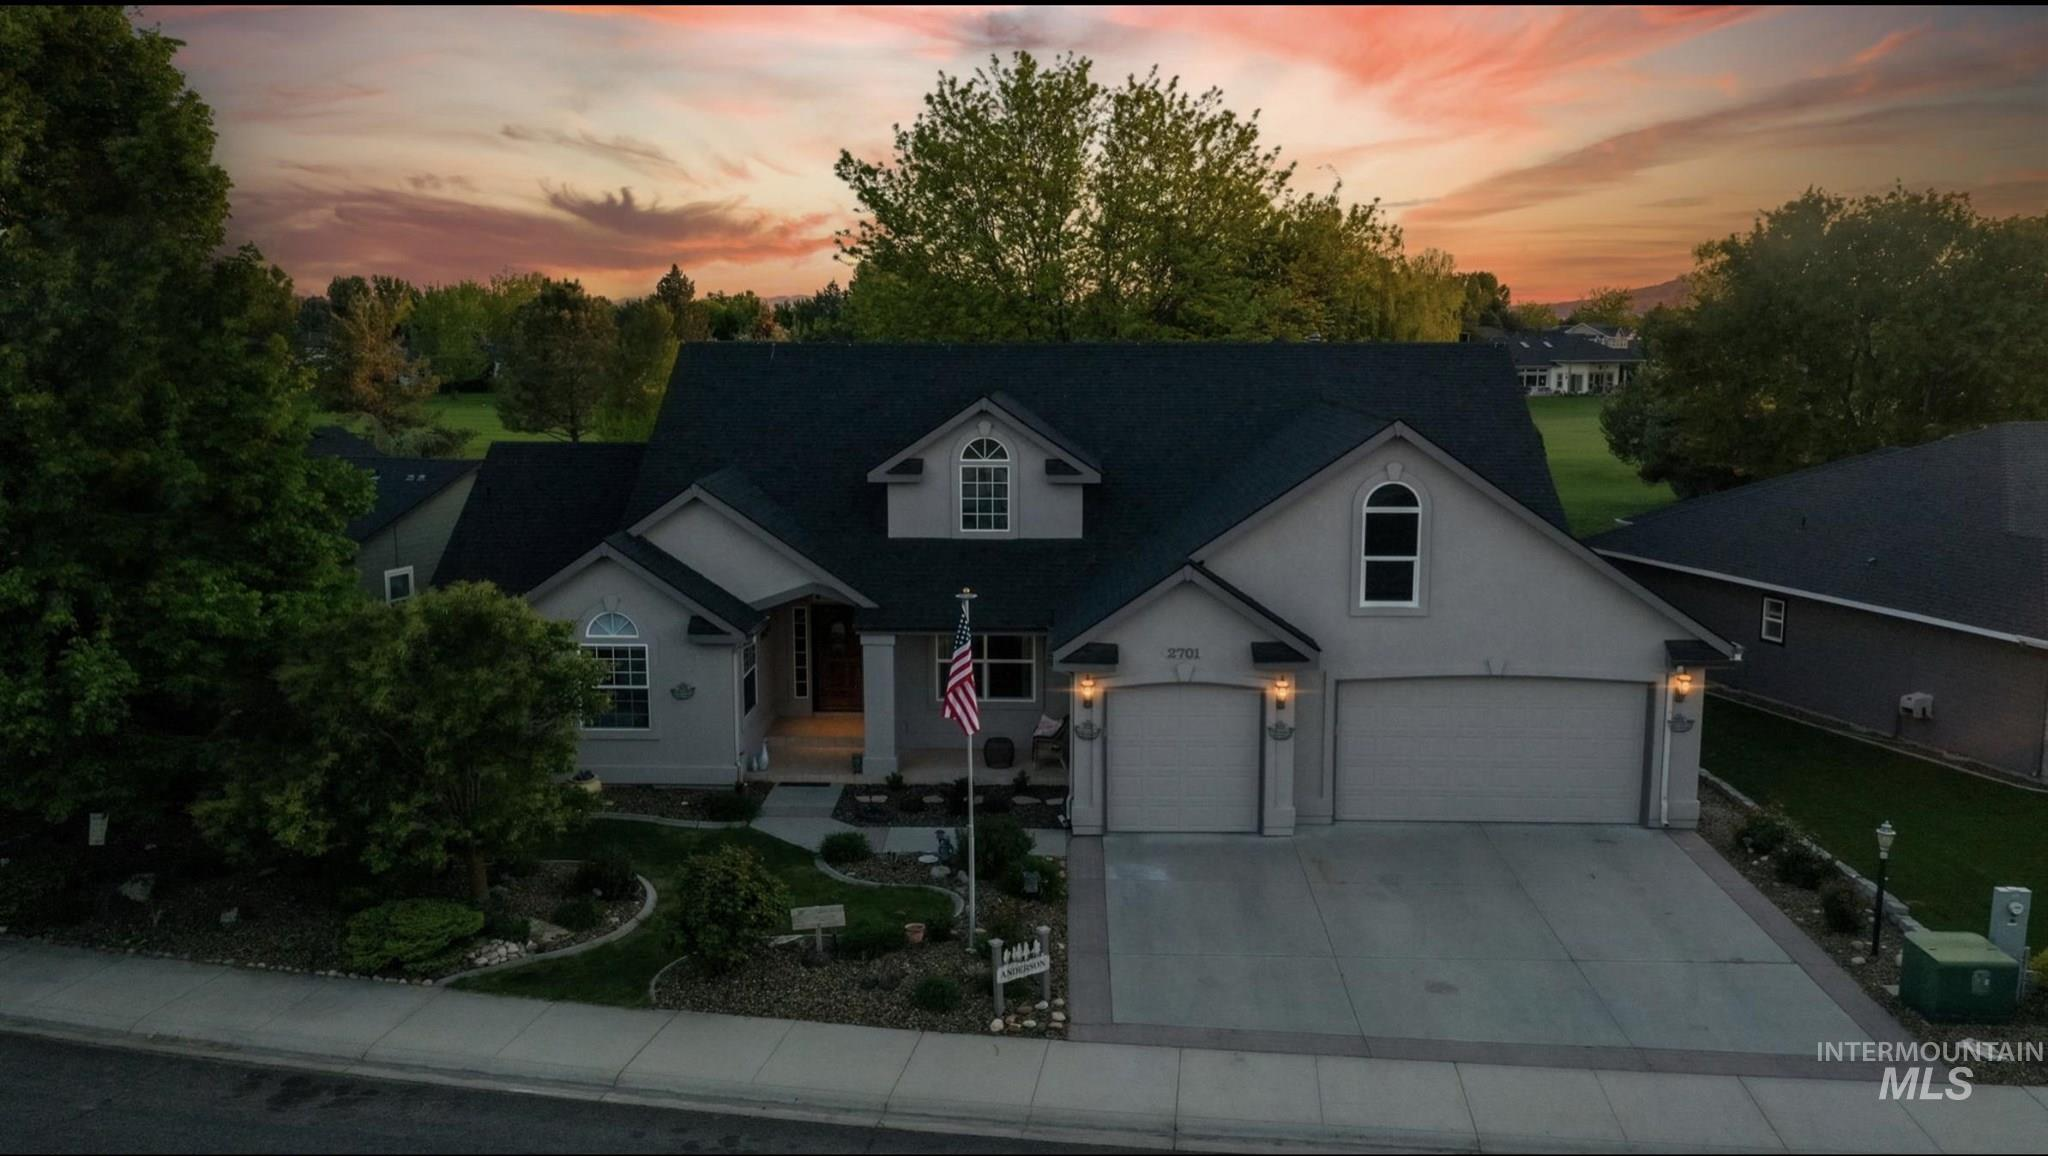 2701 N Turnberry Way Property Photo - Meridian, ID real estate listing